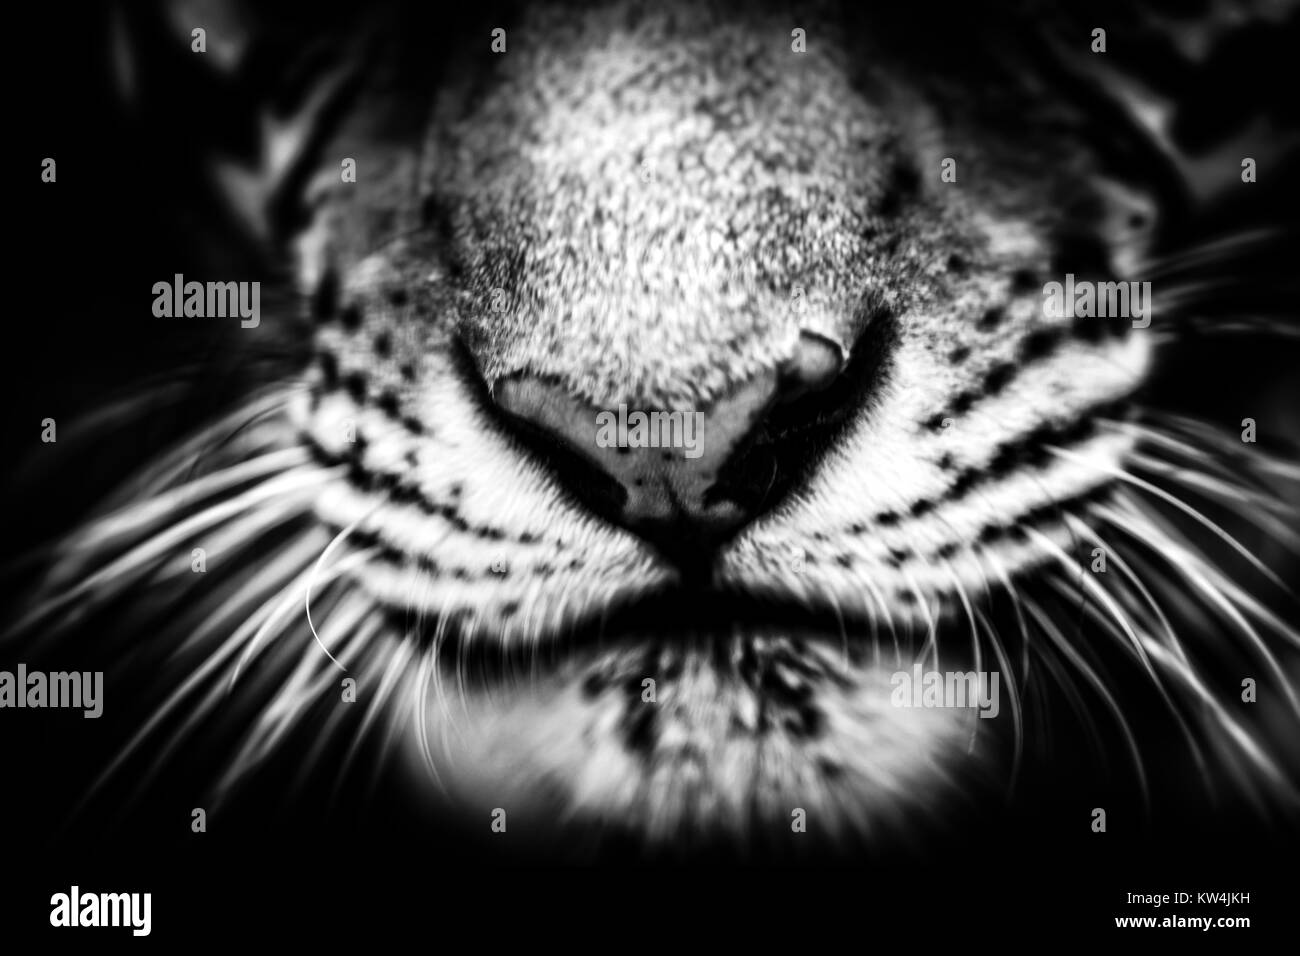 tiger nose closeup Stock Photo